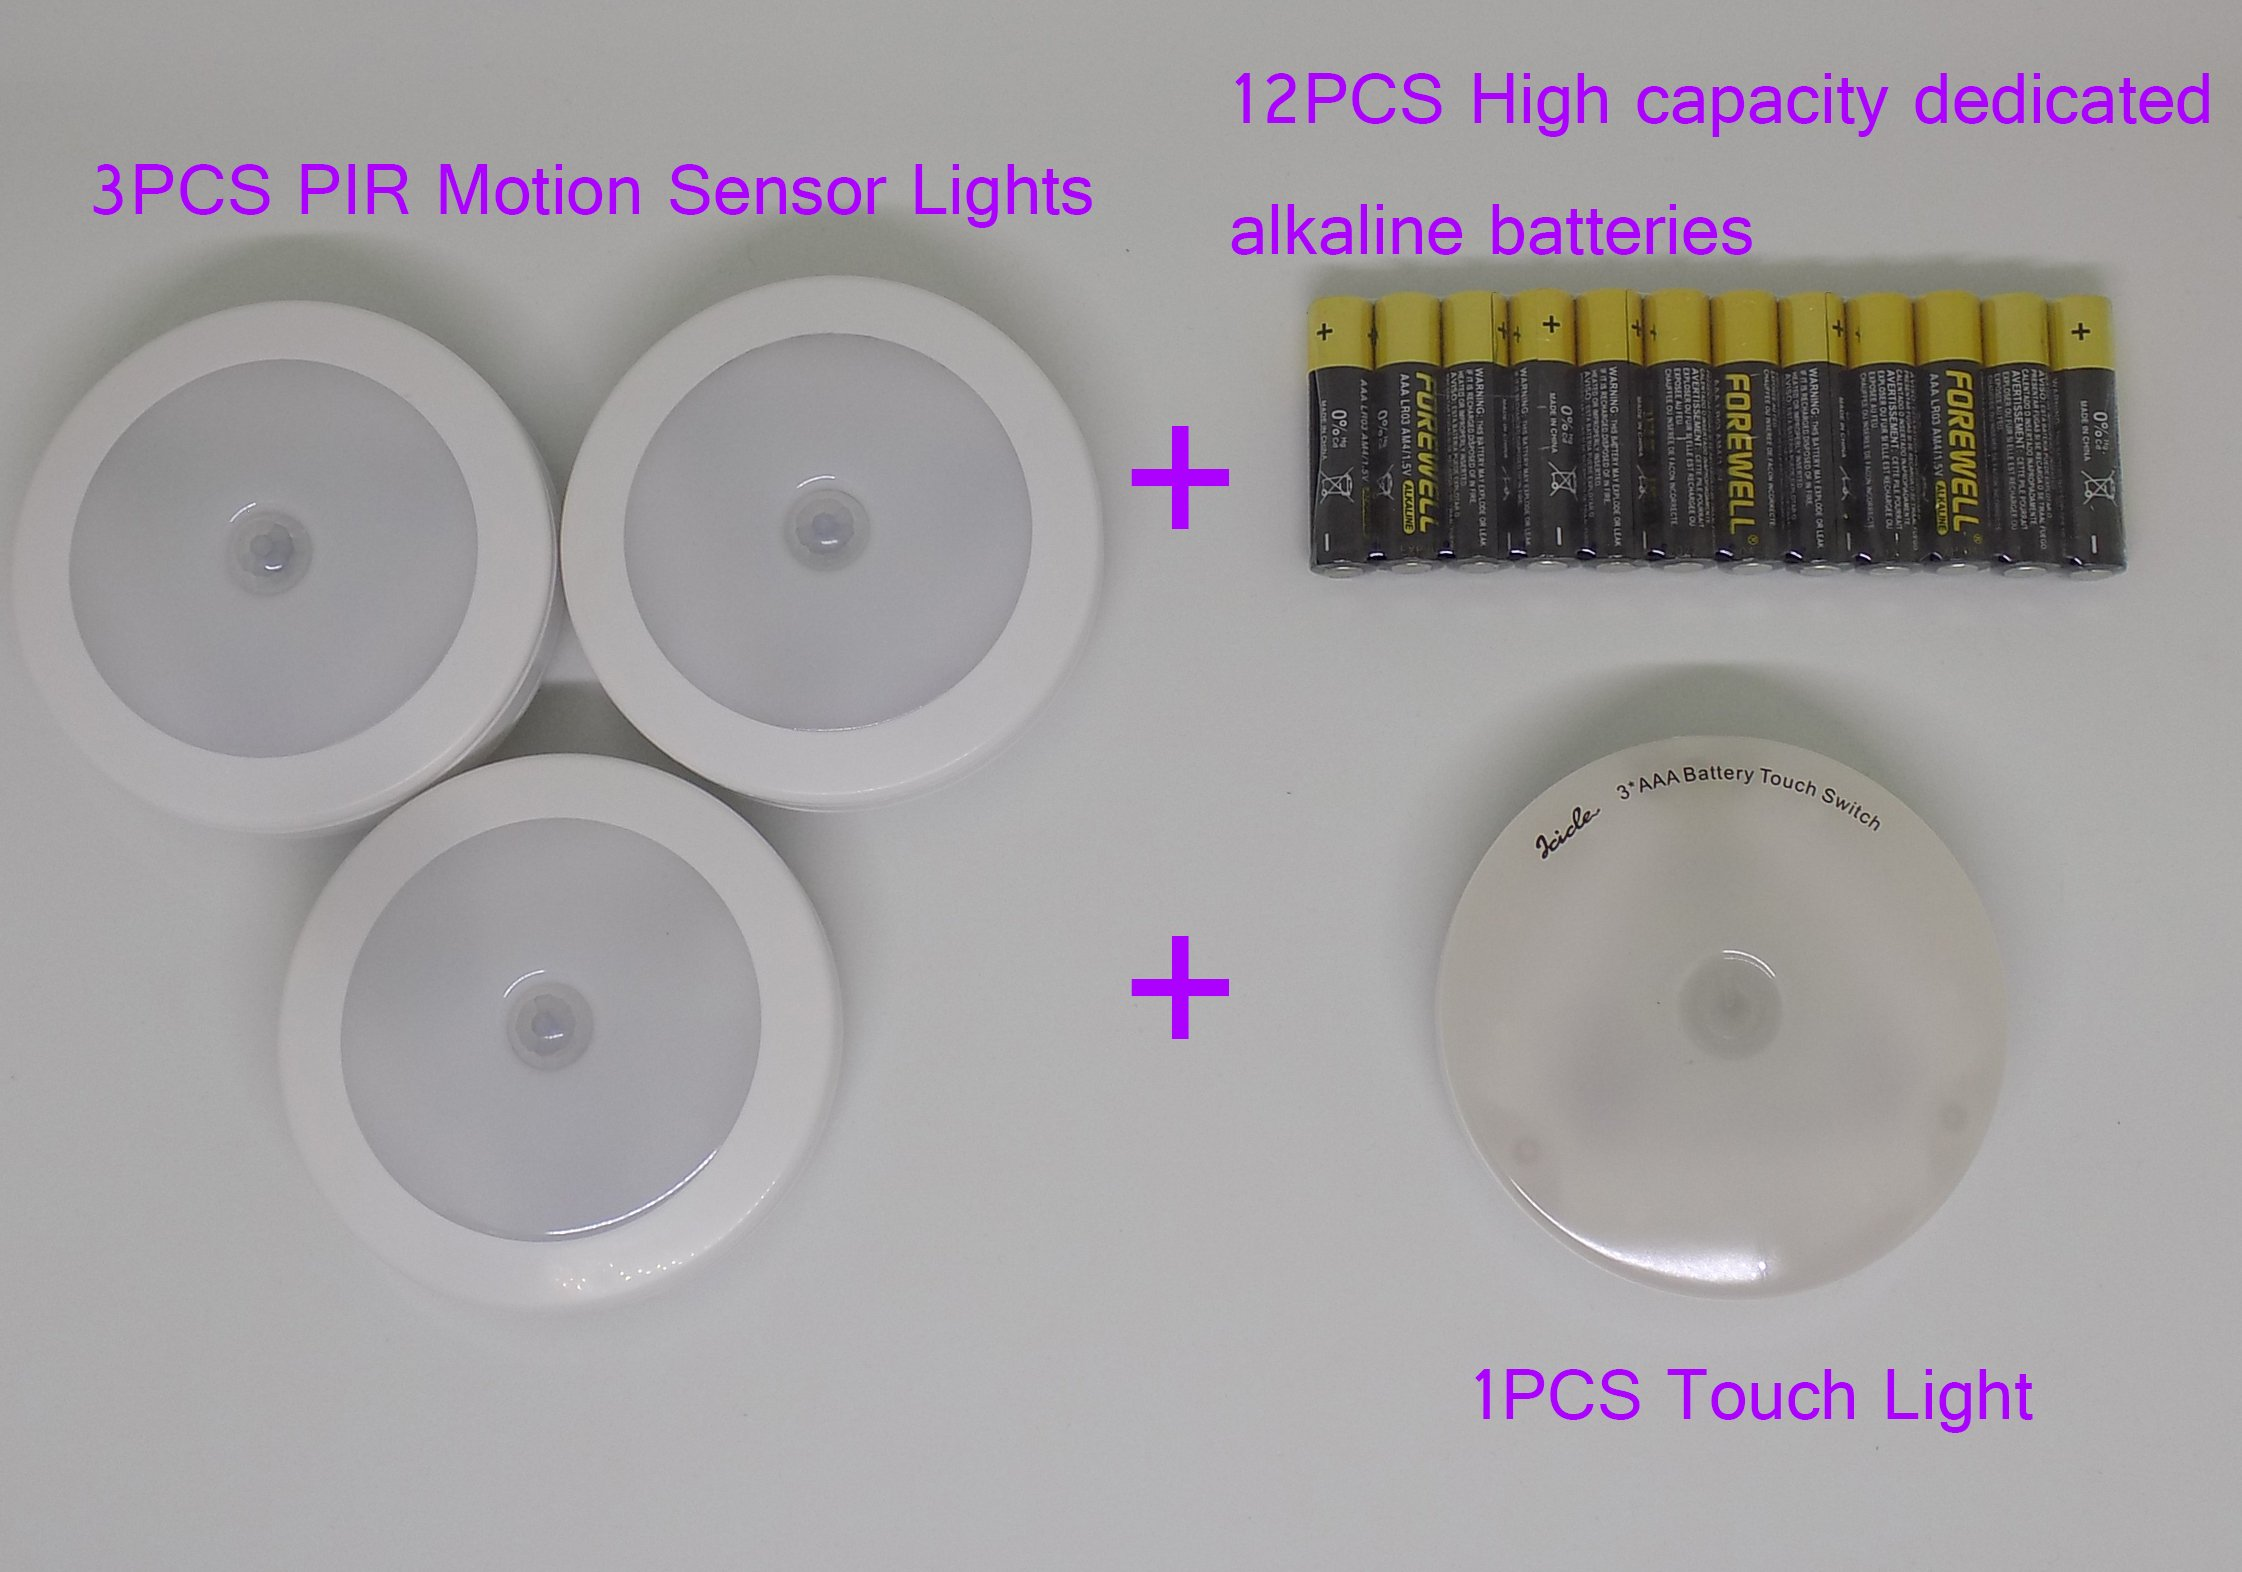 Light control PIR human sensor light 3PCS plus 1PCS touch control lights (total 4 lights), increase the supporting 12PCS high capacity 1200mAH alkaline batterie (White),Real shot picture